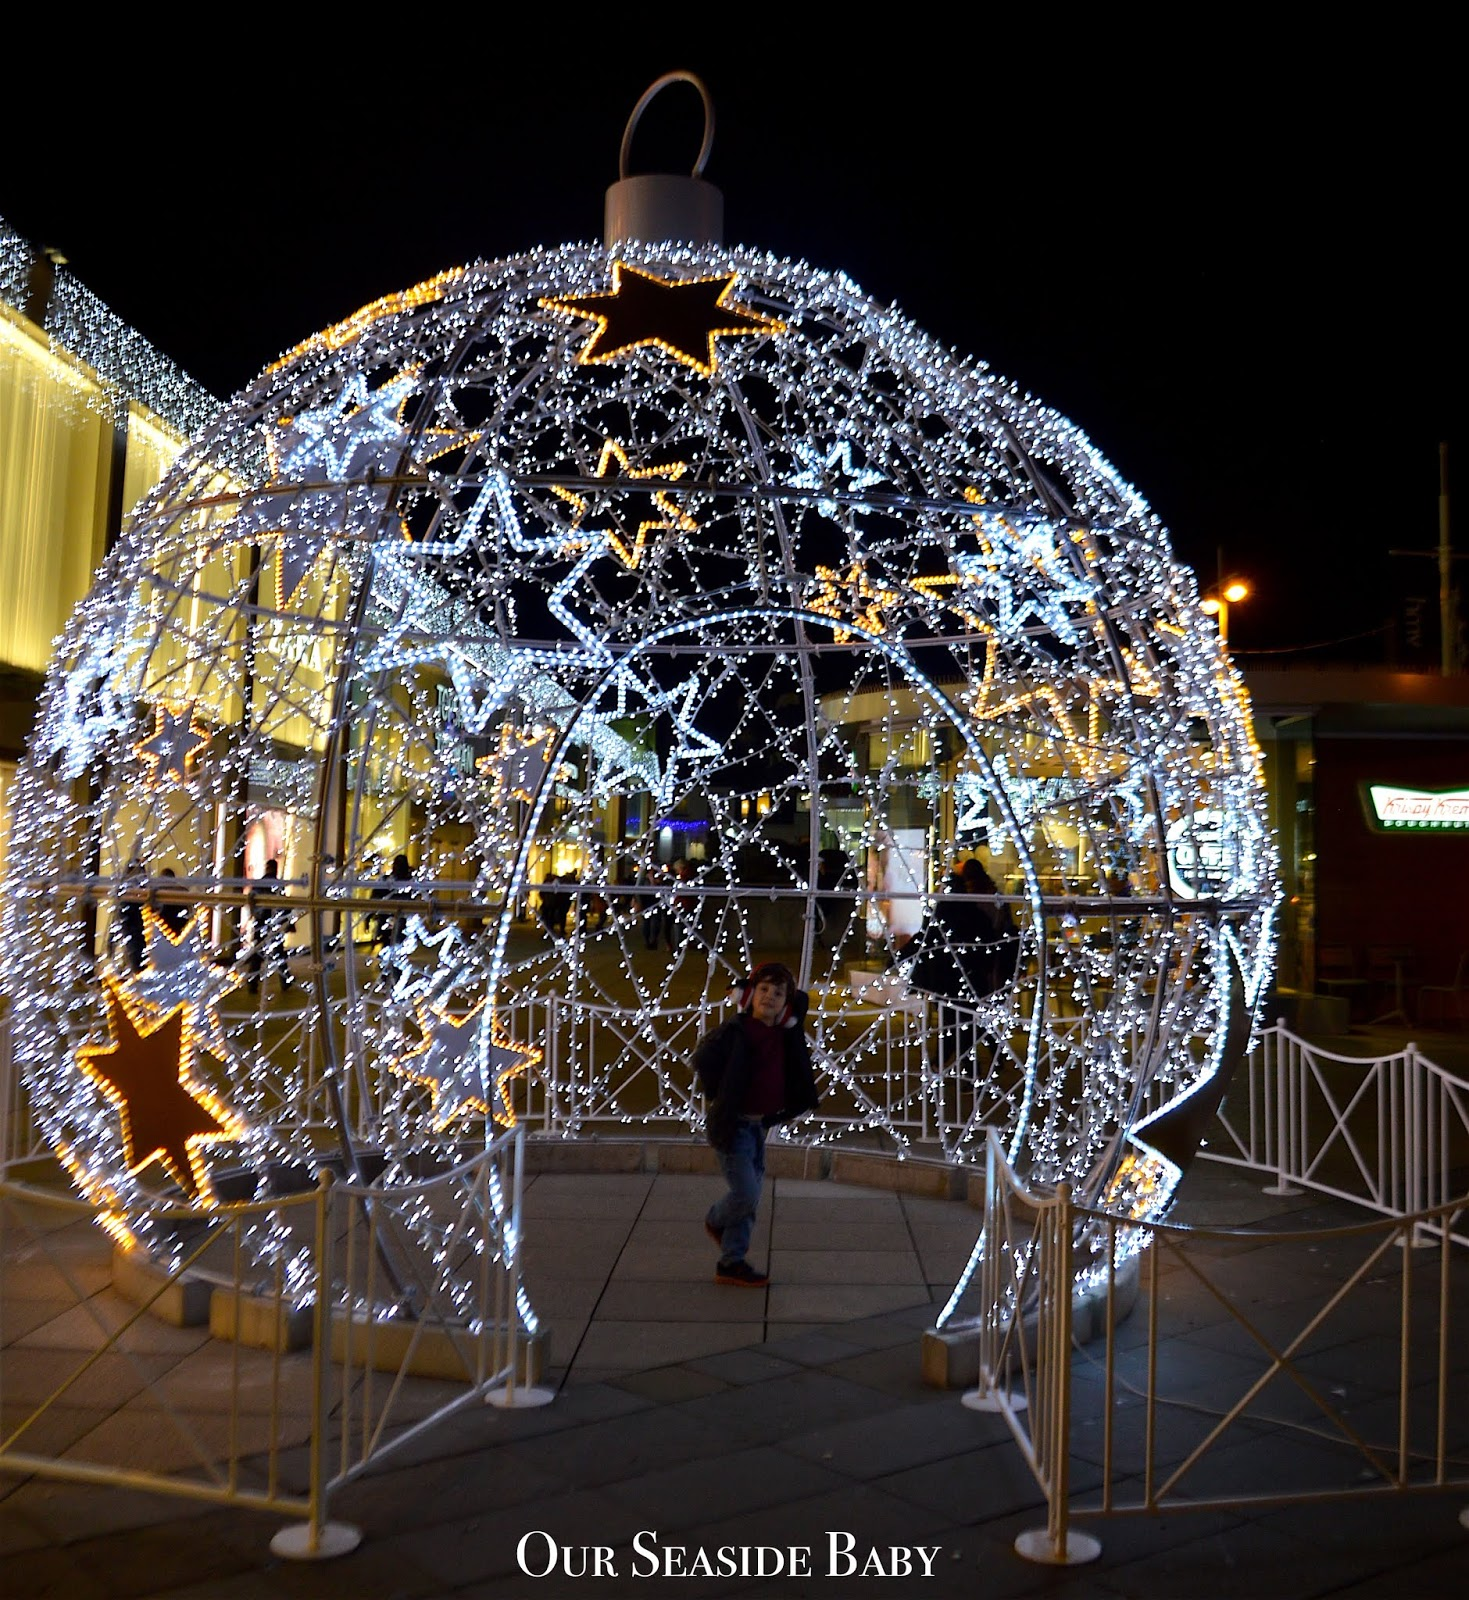 Wordless Wednesday - Giant Christmas Bauble